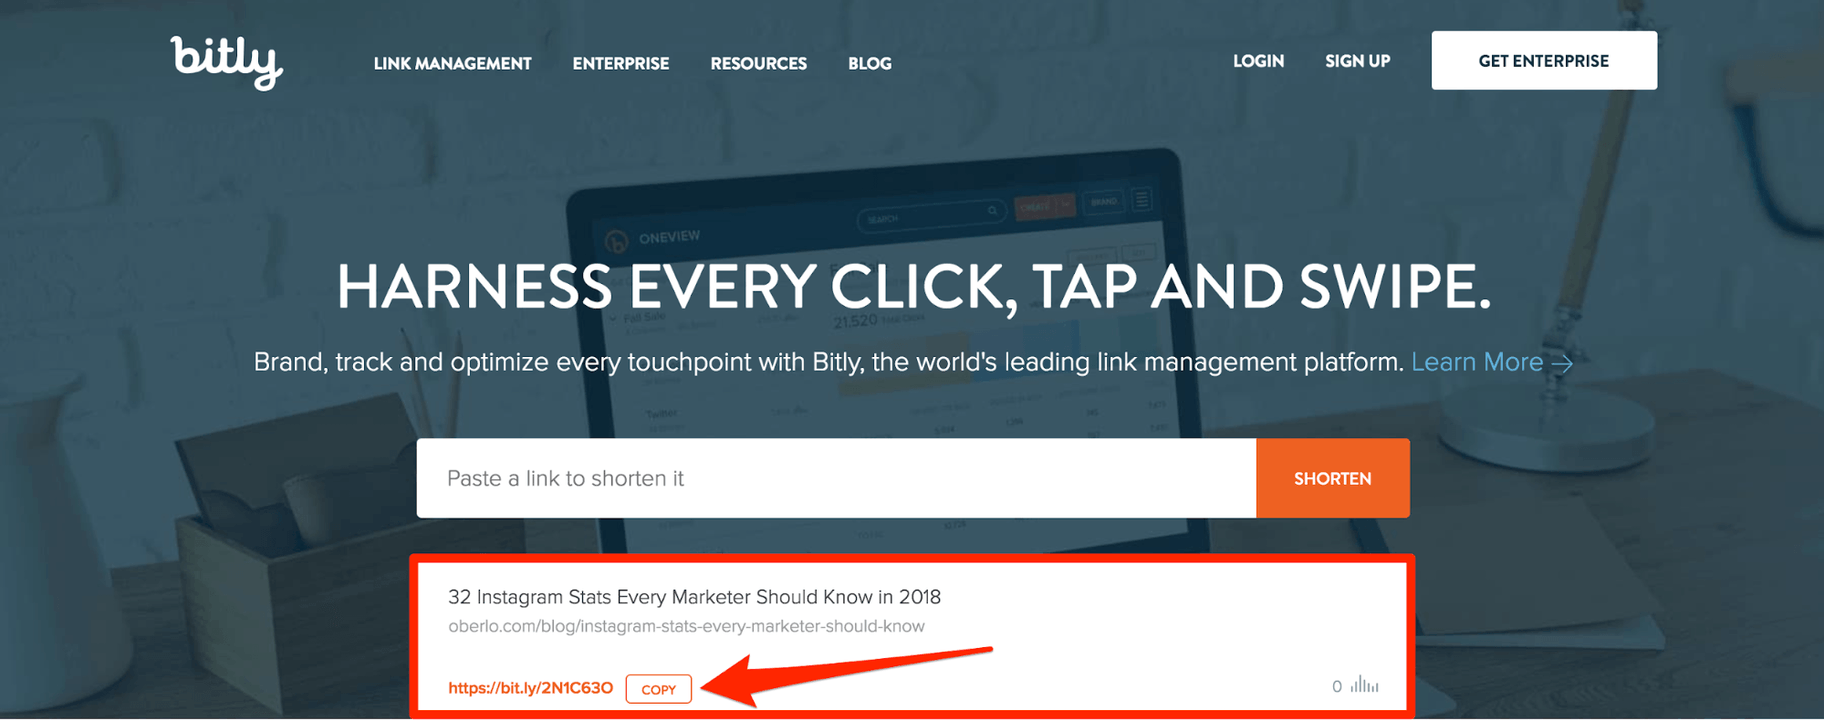 Bitly Copy Link